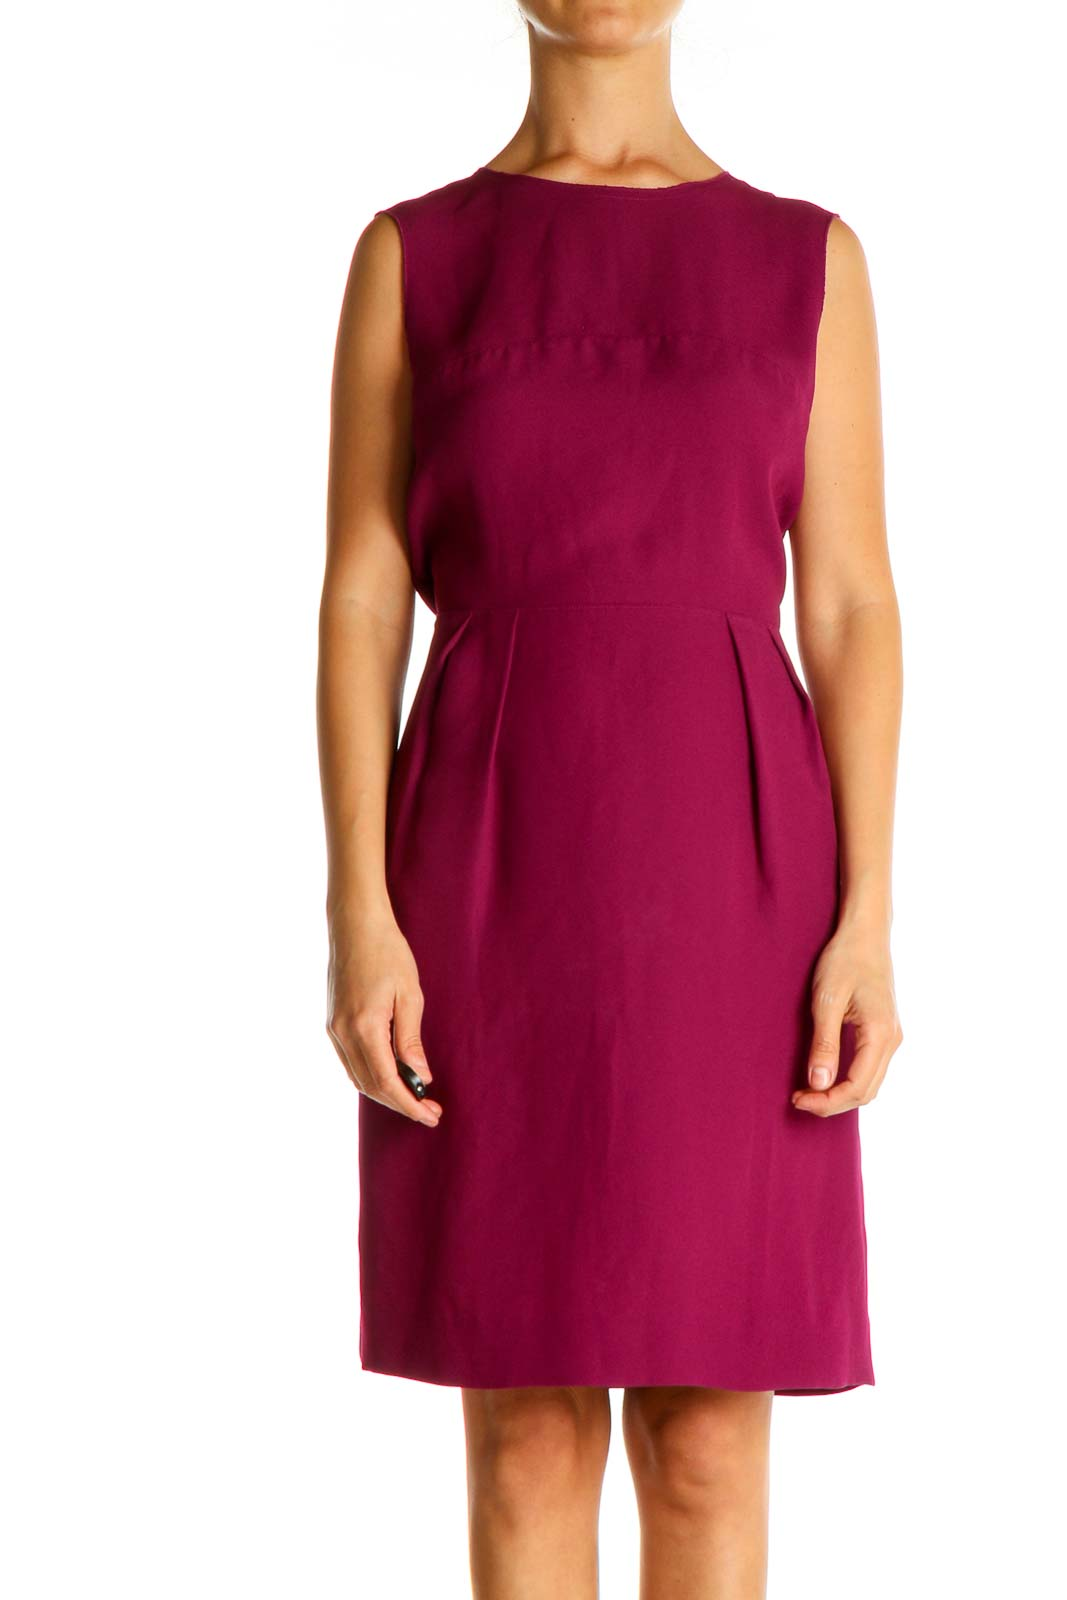 Pink Solid Work Sheath Dress Front